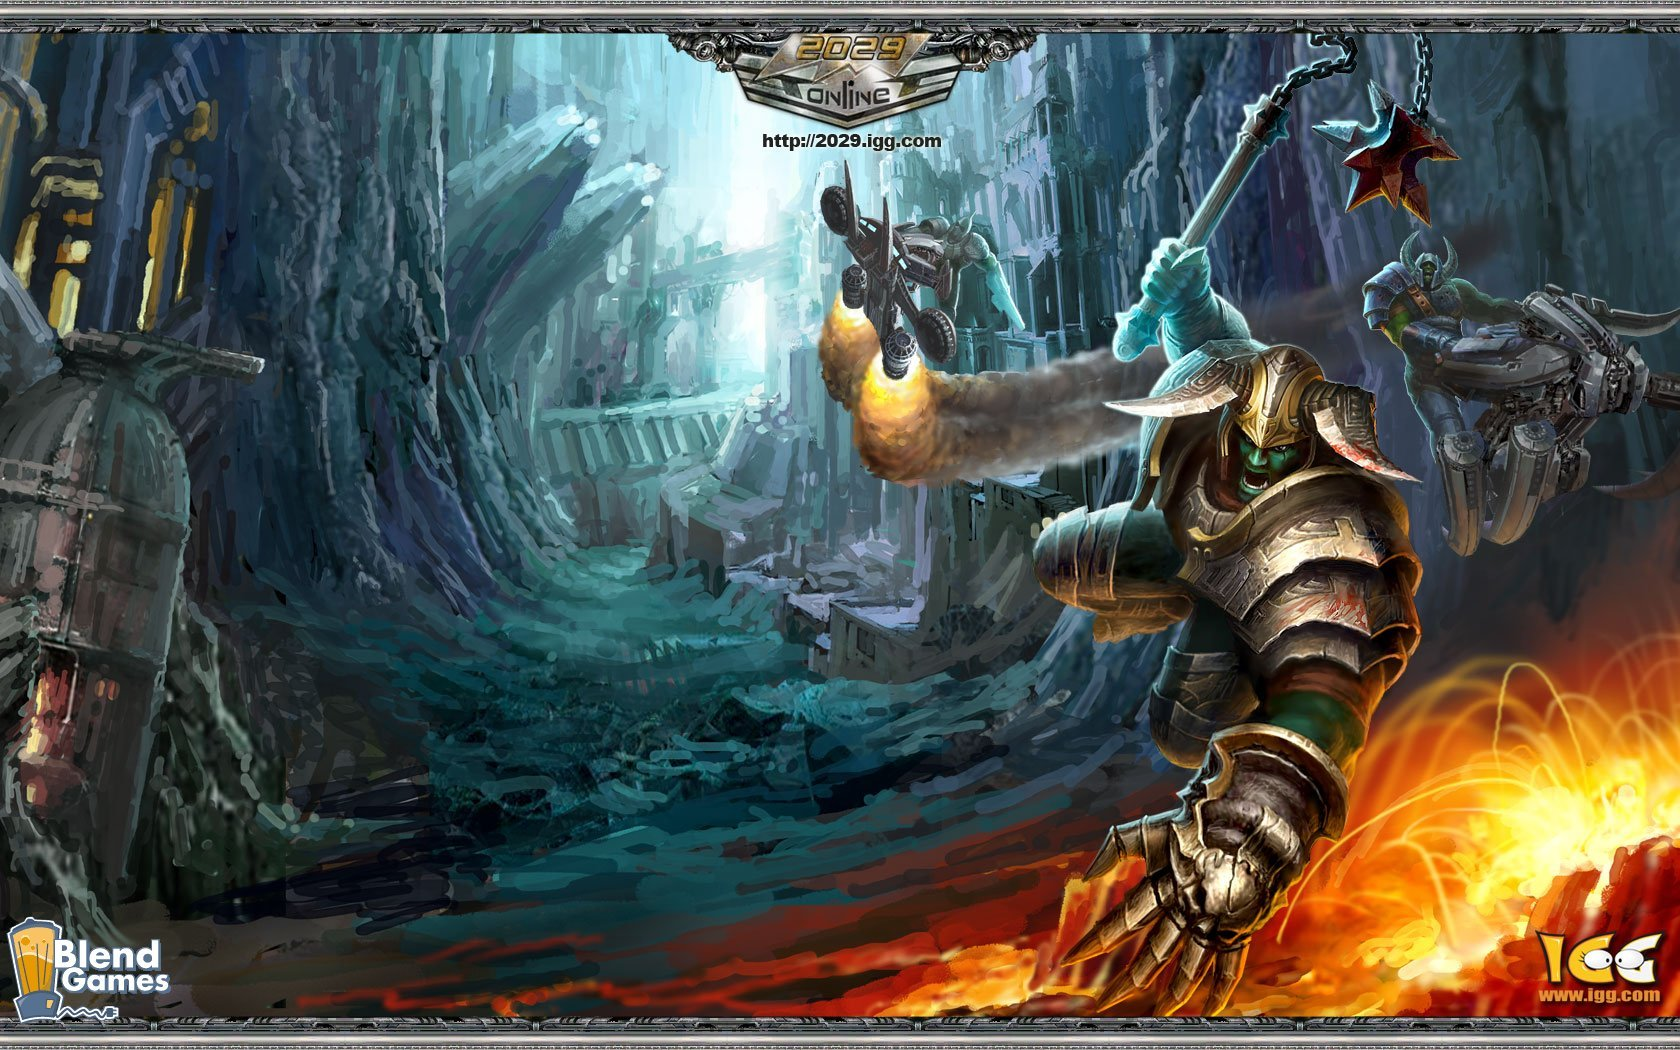 IGG Interview: 2029 Online Is Like Diablo And WoW #6490